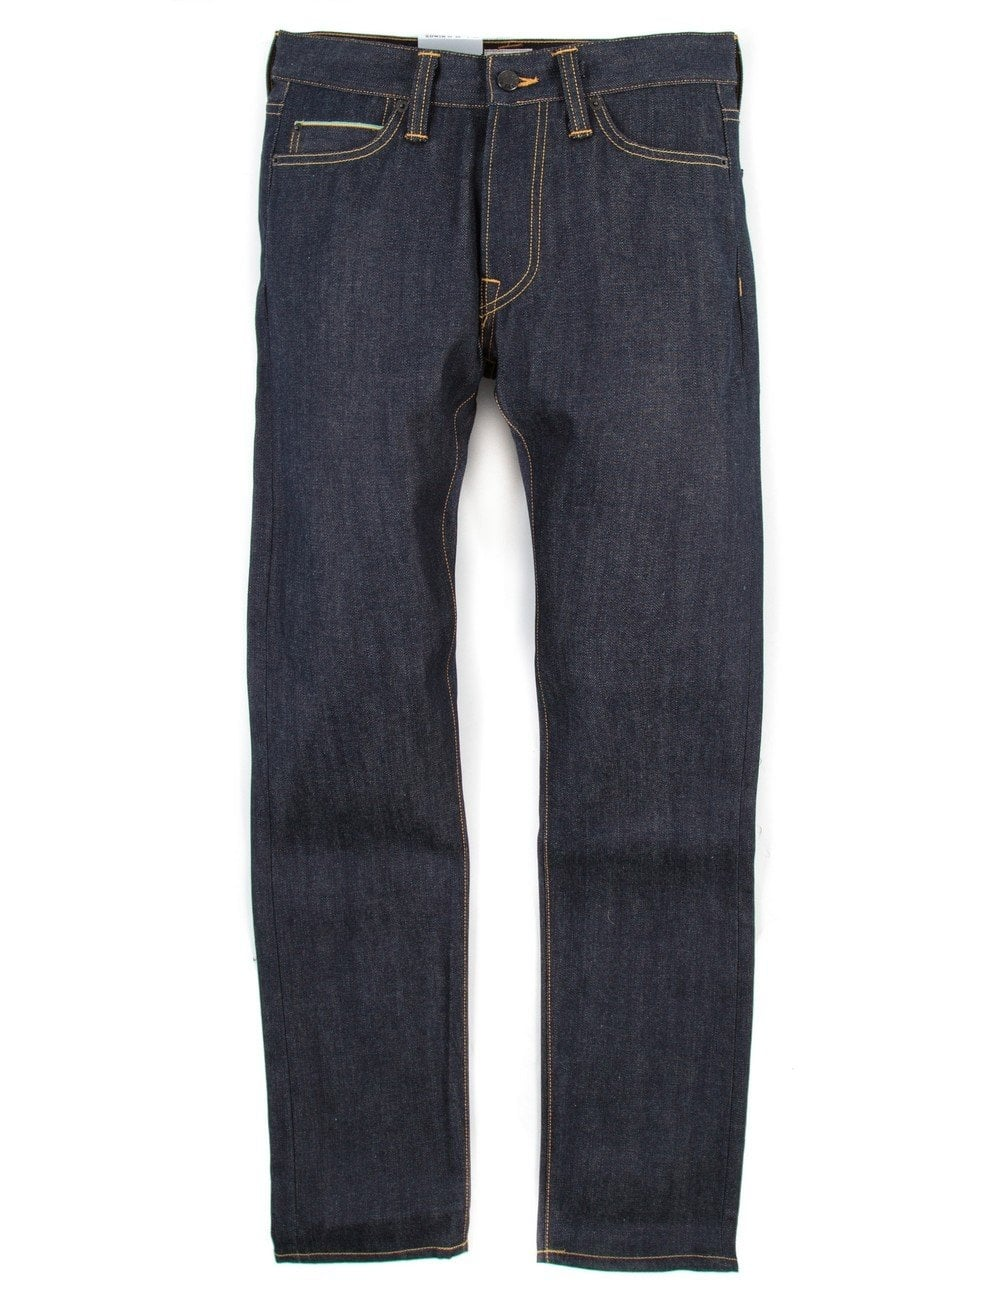 Edwin Jeans Ed 75 Relaxed Tapered 63 Rainbow Selvedge Denim